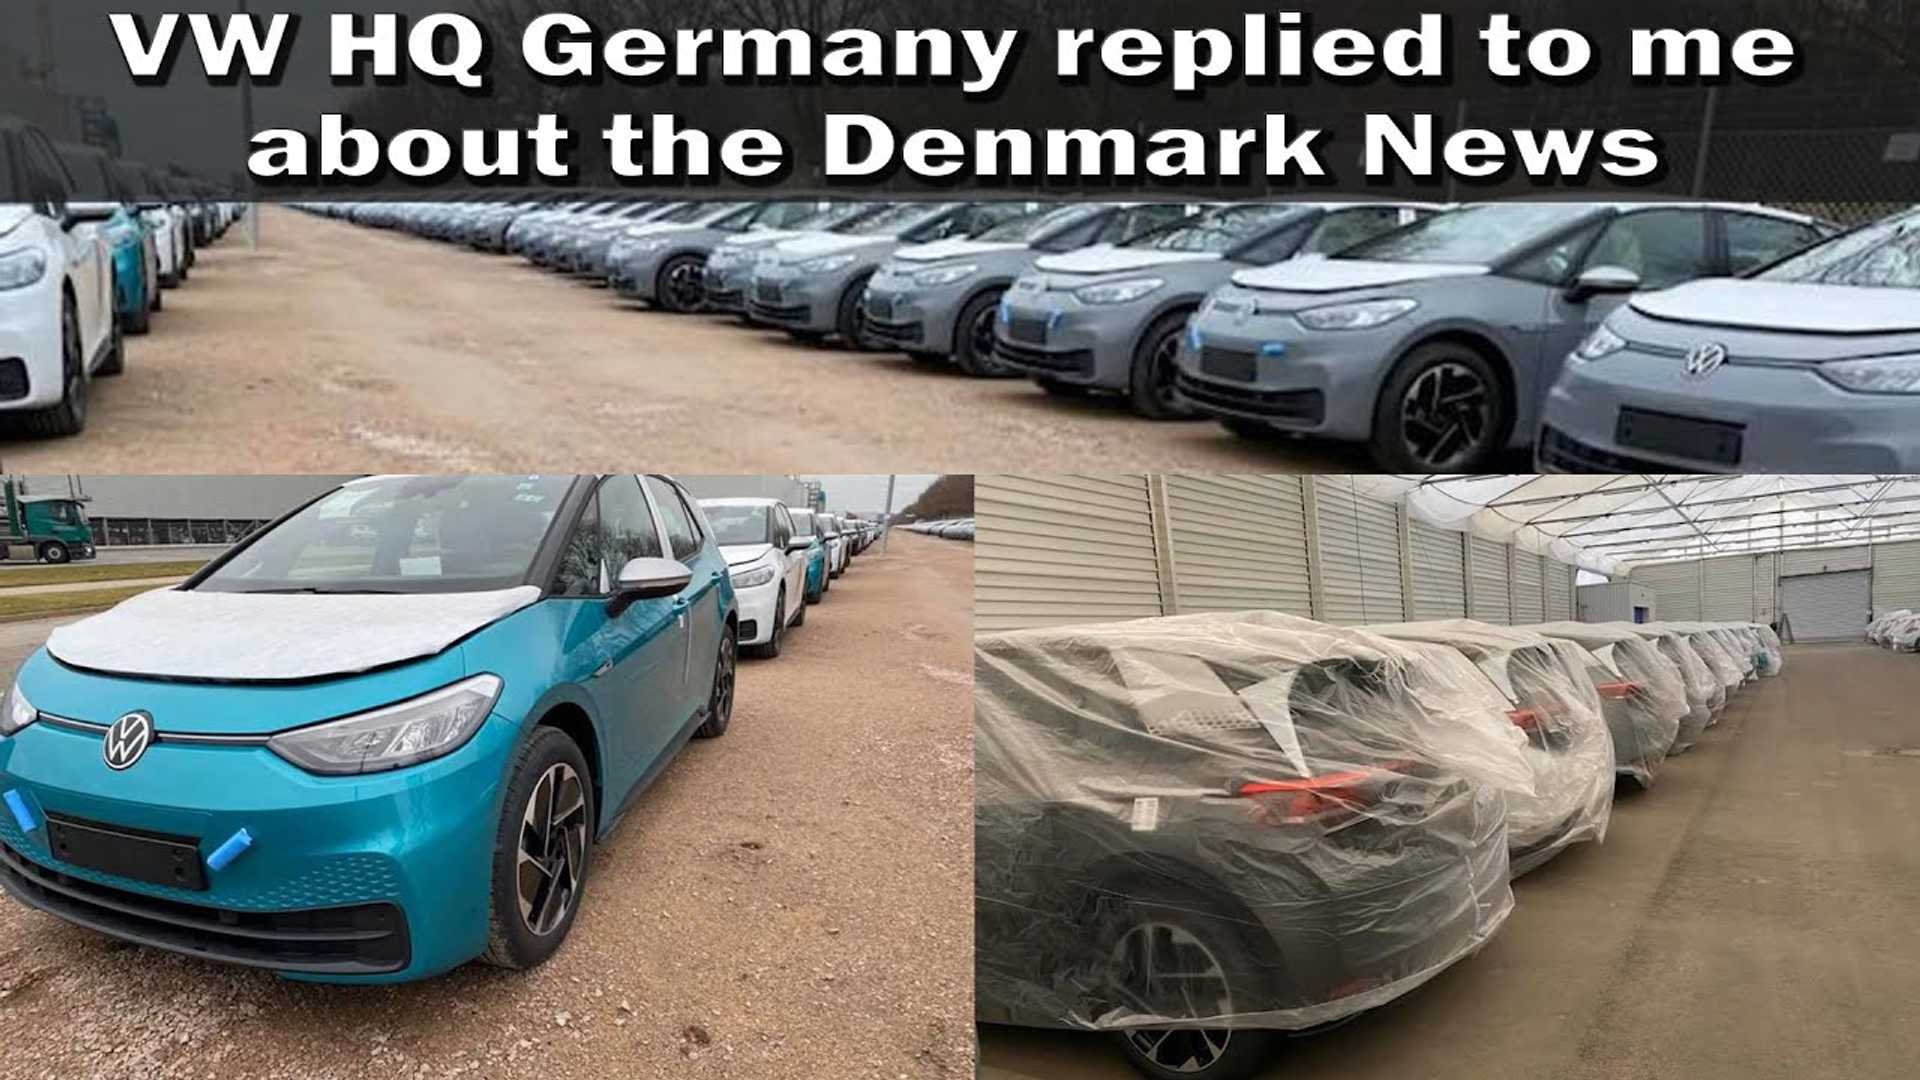 VW ID.3 parking lot stored August 2020 deliveries